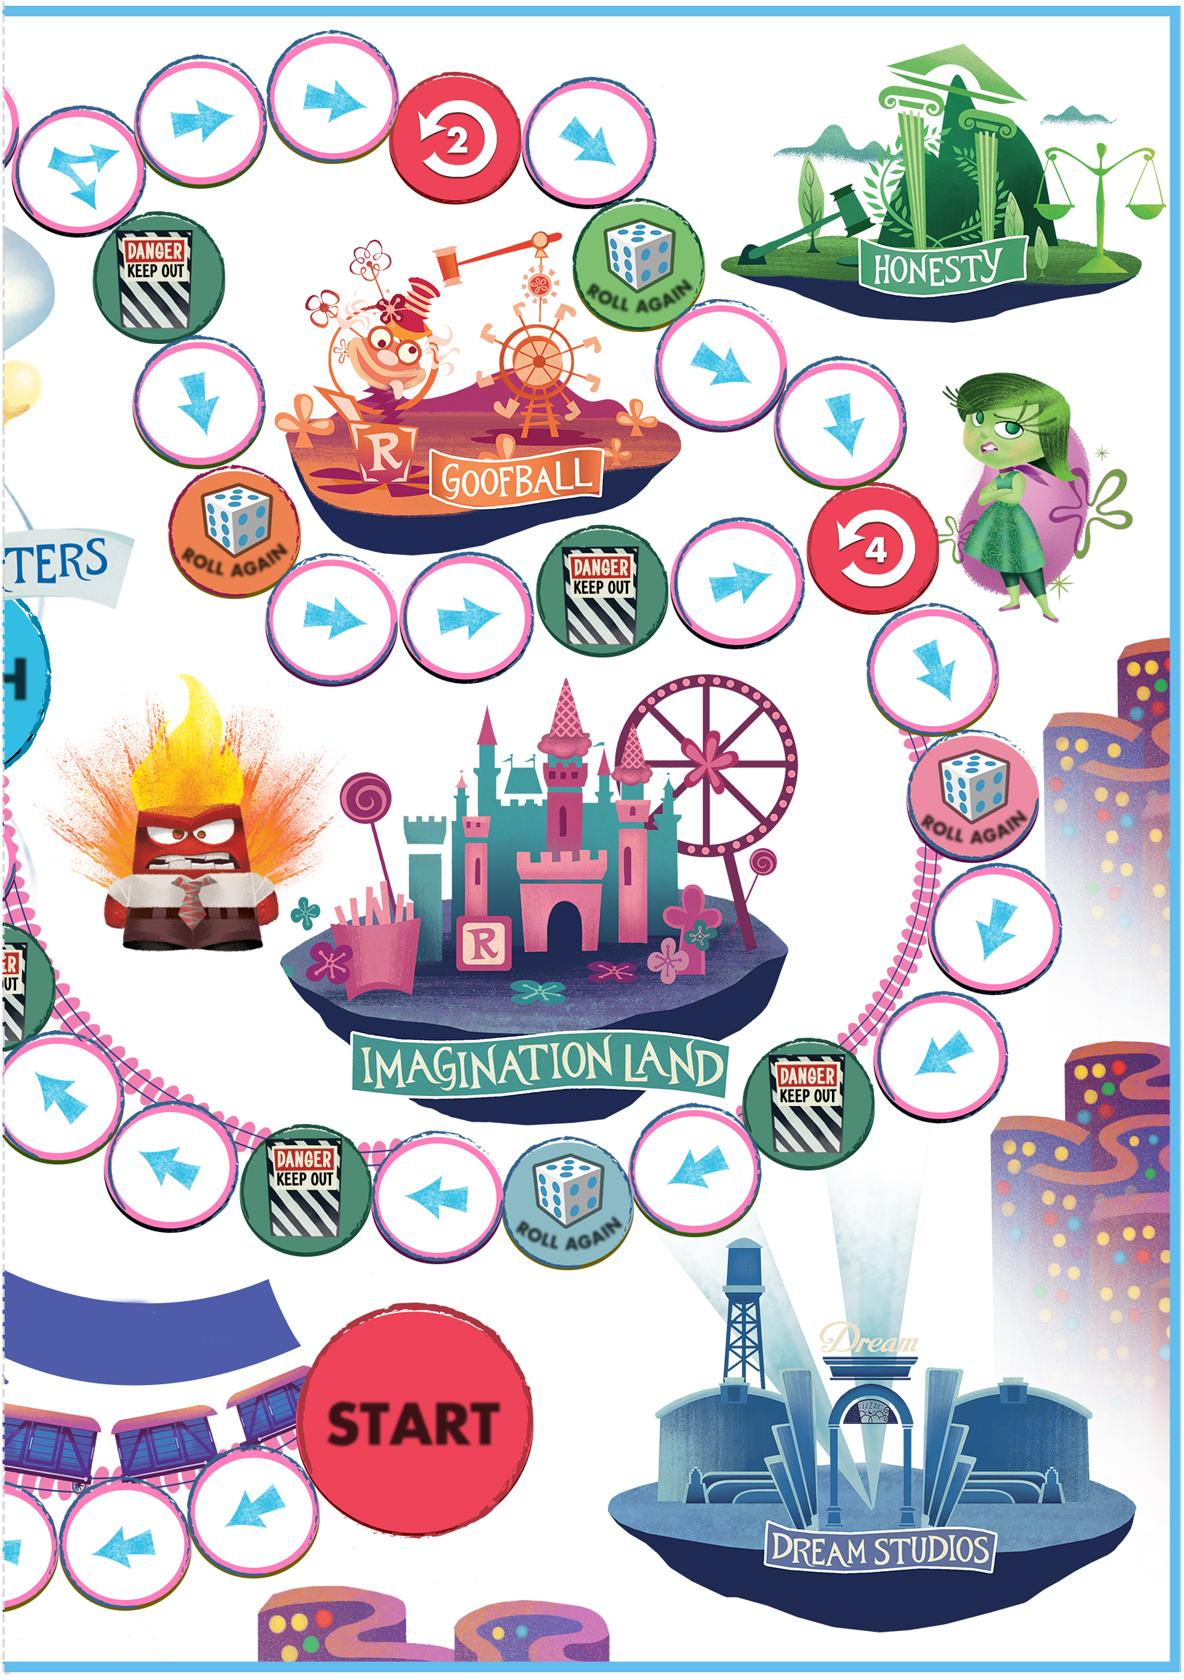 Free Insideout Nail Art Crafts Amp Board Game To Make